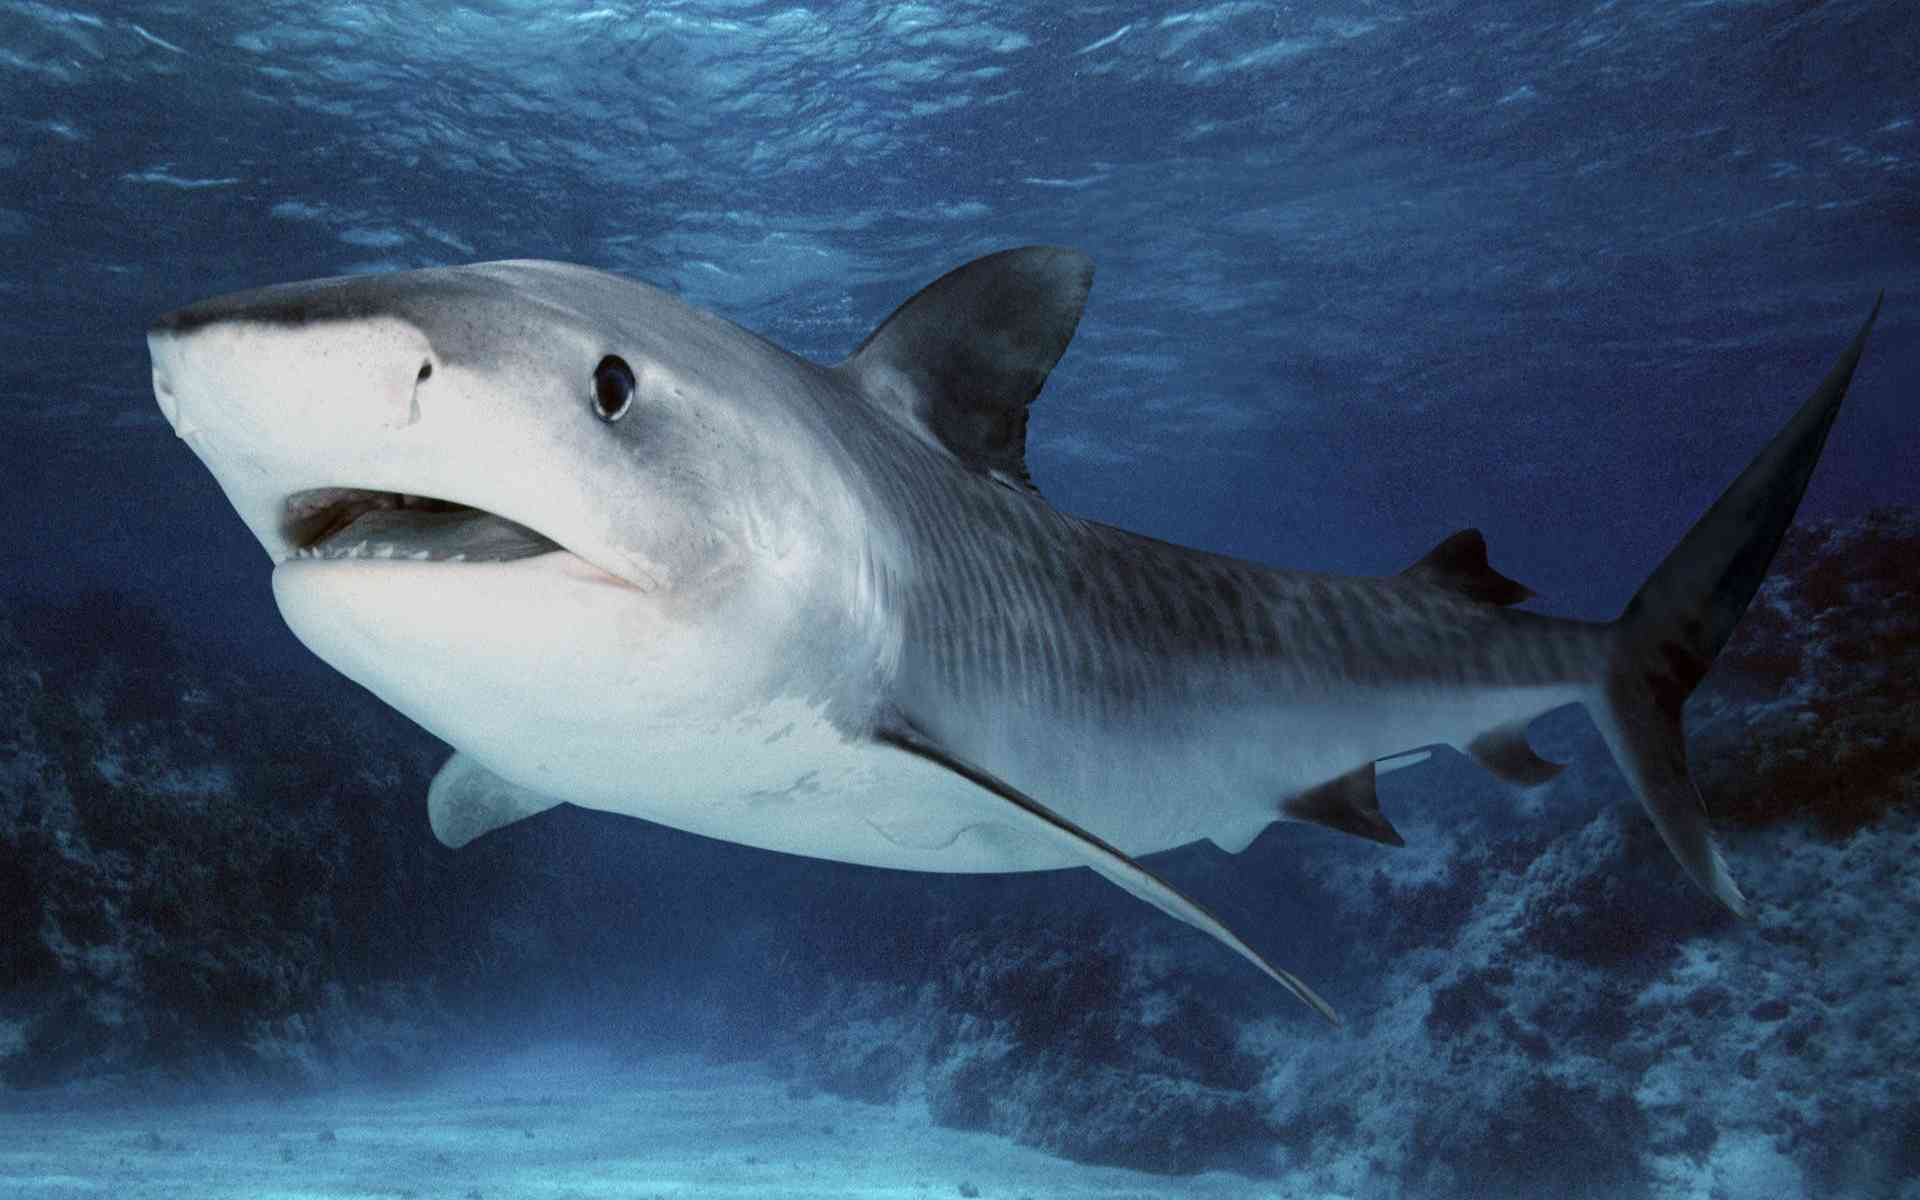 DOWNLOAD: tiger shark wallpaper free picture 2560 x 1600